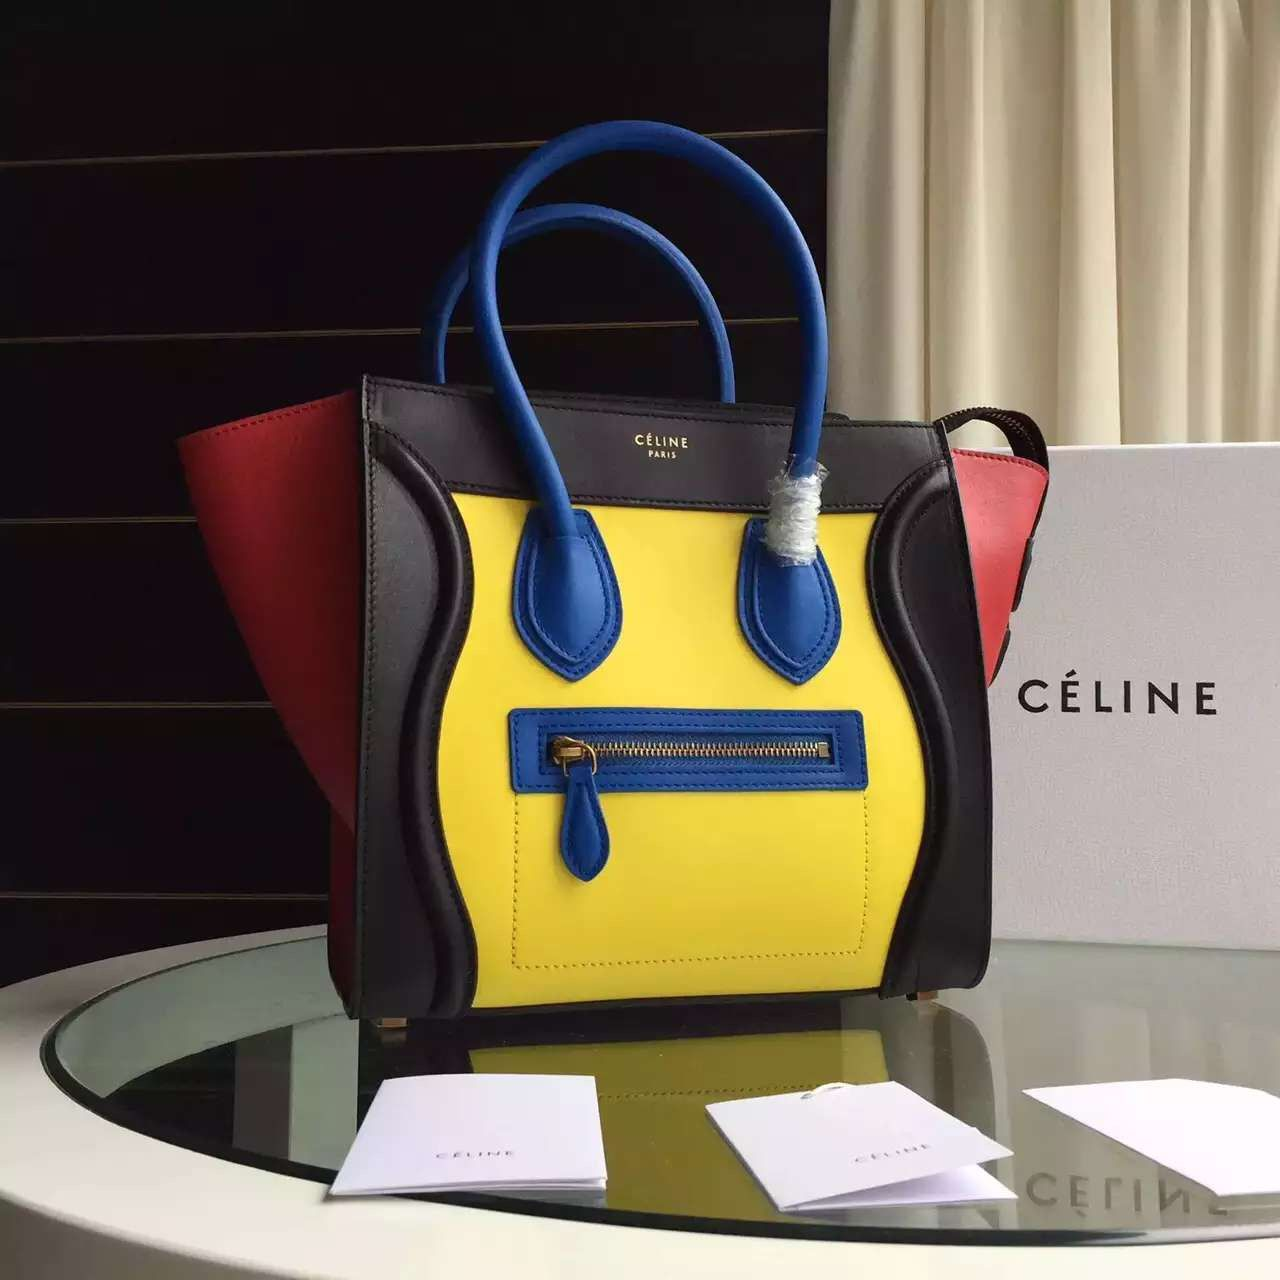 c6a862a464 Celine Multicolor Micro Mini Luggage Handbag in Smooth Calfskin  Yellow Black Red Blue